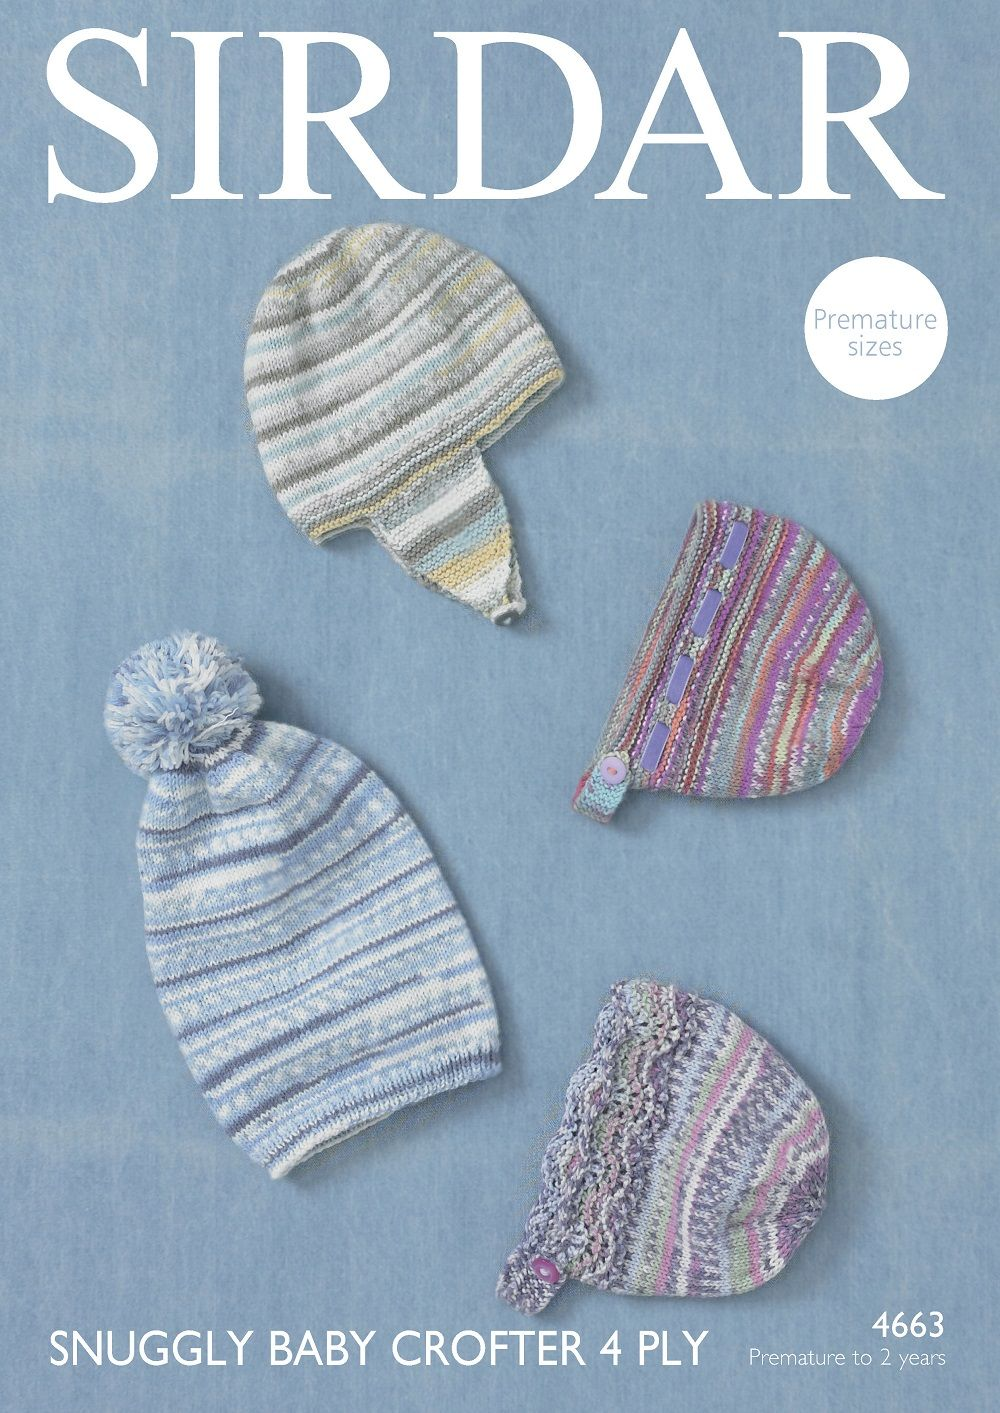 45232727c83 Sirdar Babies Hats Knitting Pattern in Baby Crofter 4ply 4663P PDF